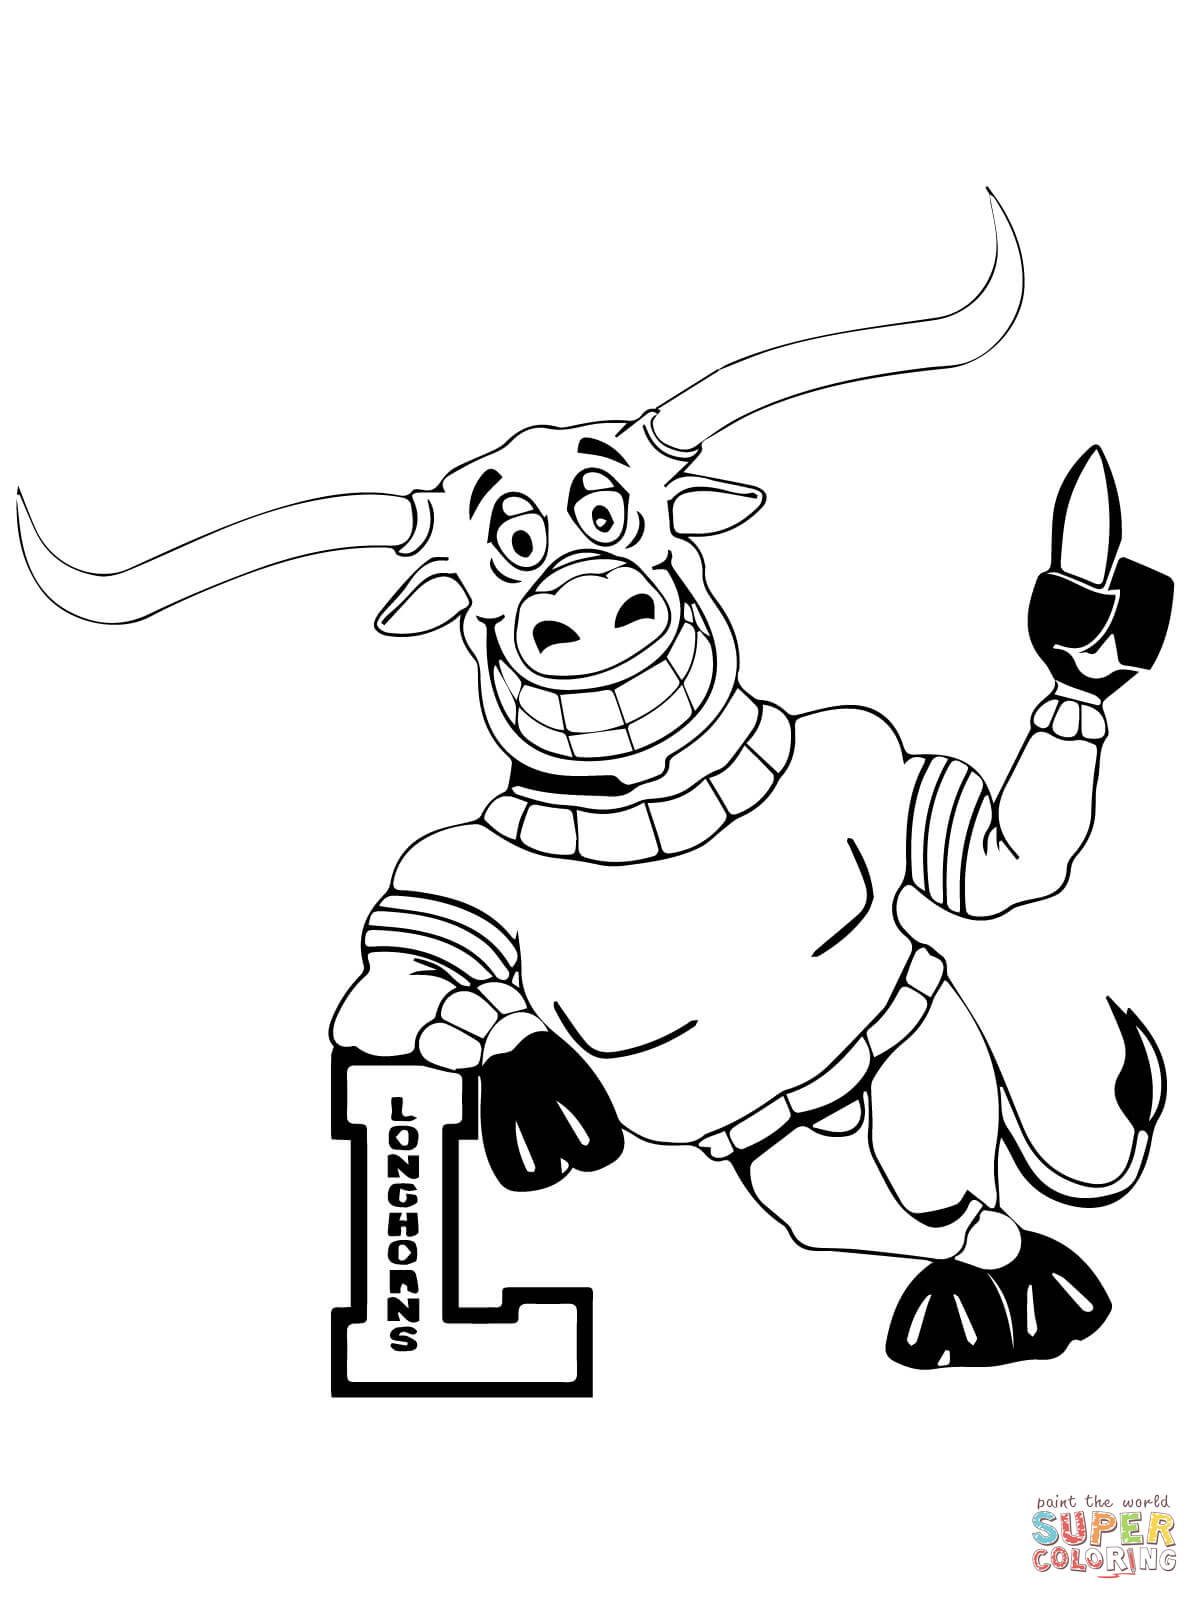 Ut Longhorn Mascot Coloring Page